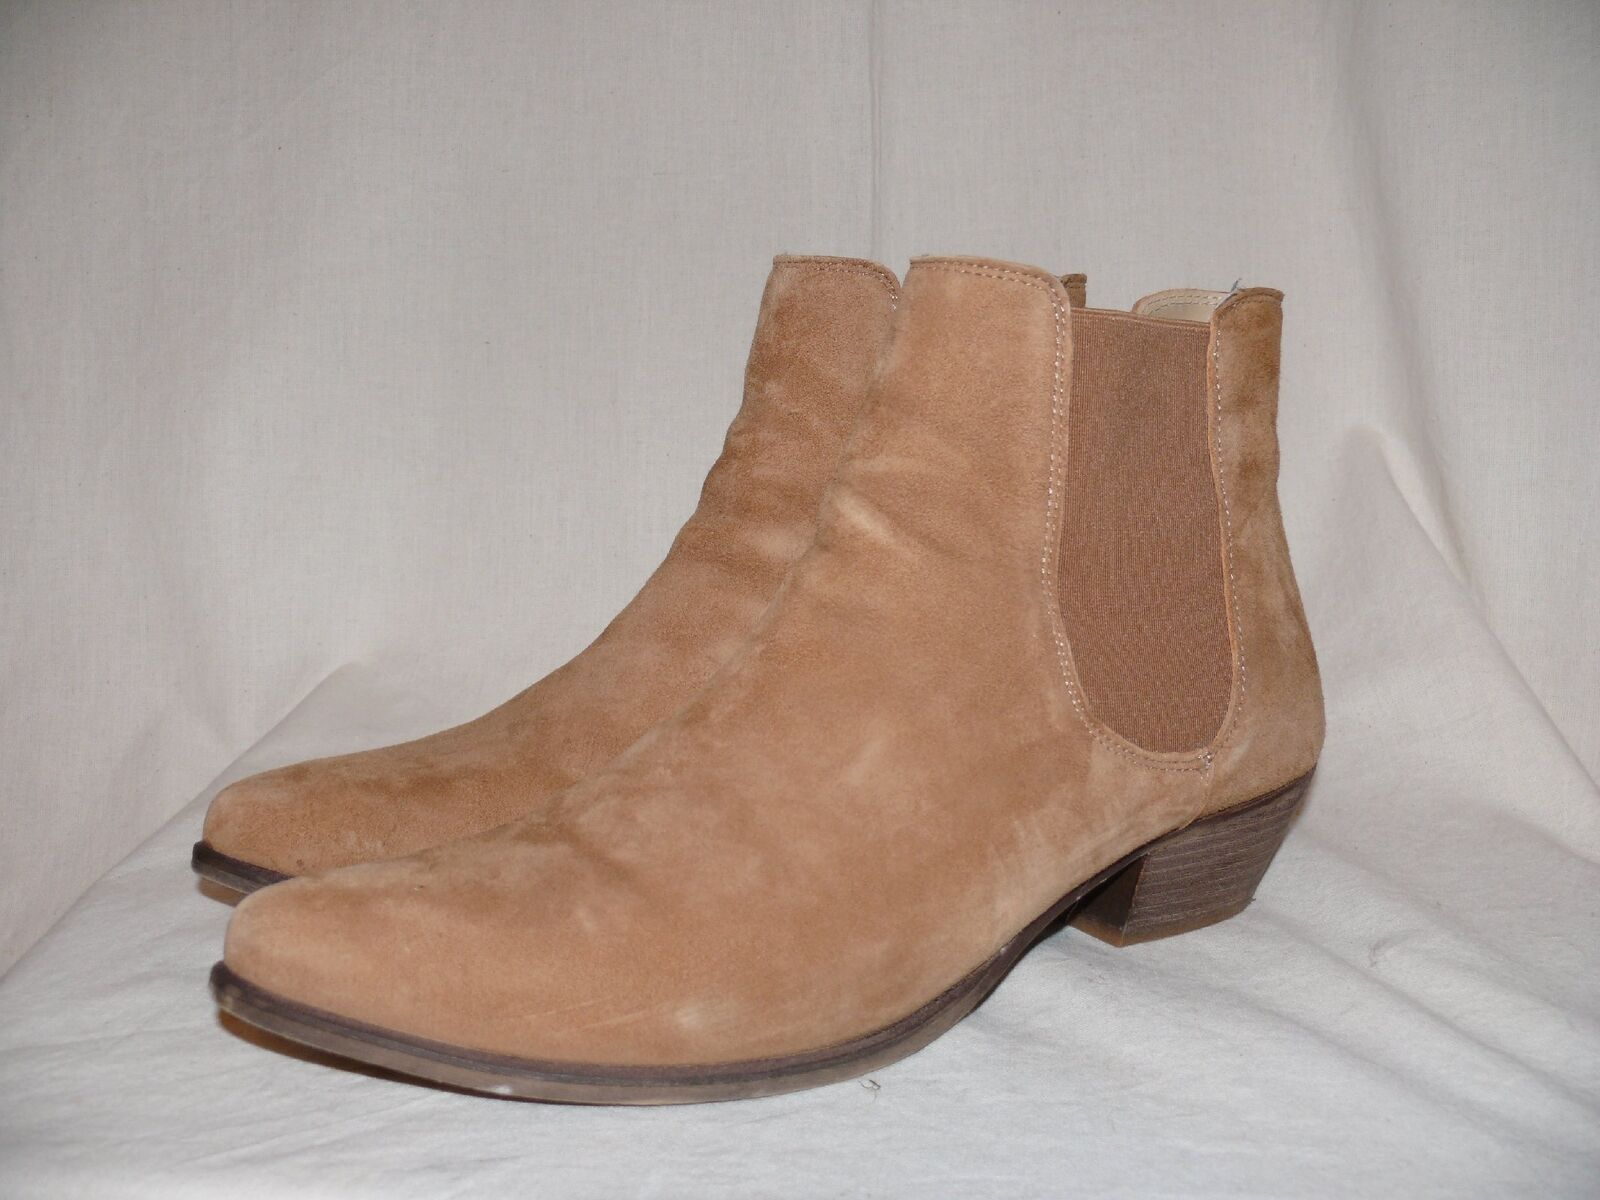 Mentor Bottines Chelsea bottes Bottines Marron 41 US 9,5 excellent état